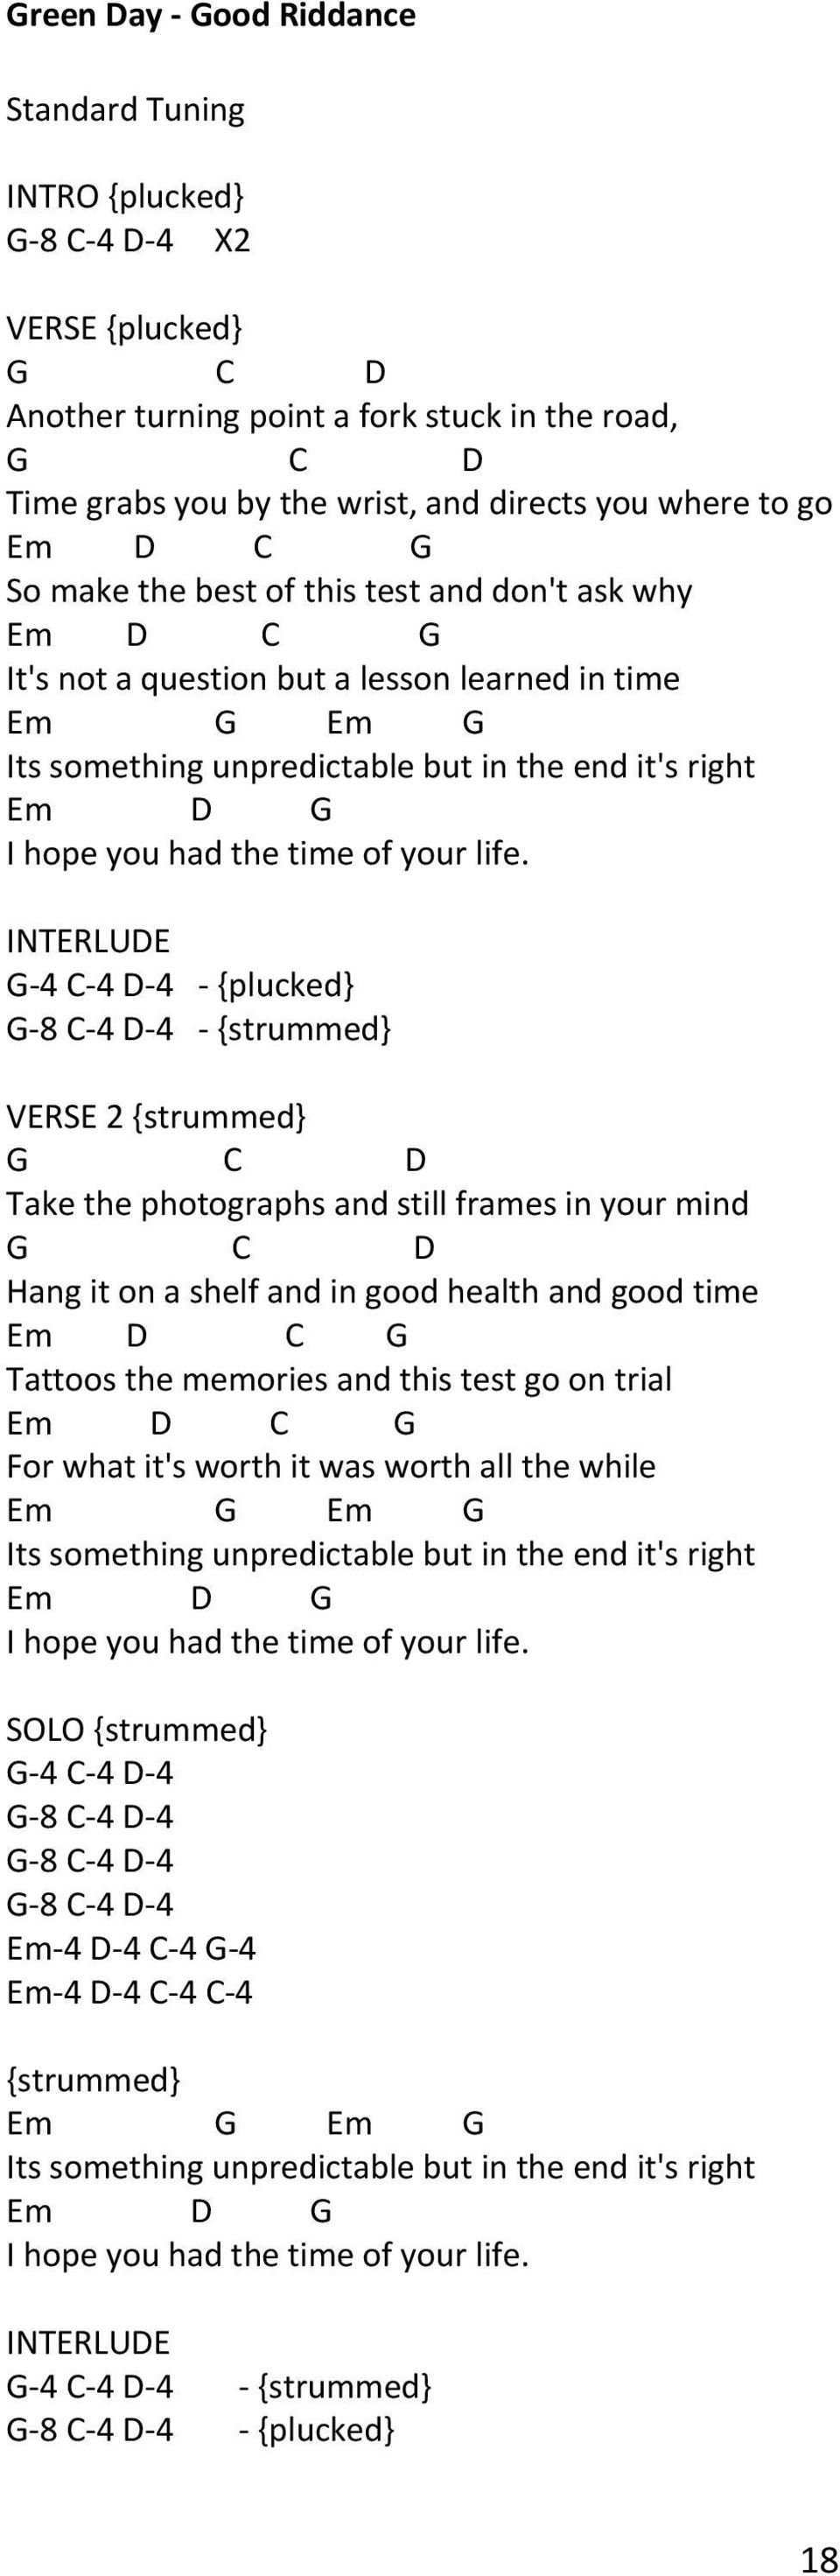 INTERLUE 4 4 4 {plucked} 8 4 4 {strummed} VERSE 2 {strummed} Take the photographs and still frames in your mind Hang it on a shelf and in good health and good time Em Tattoos the memories and this